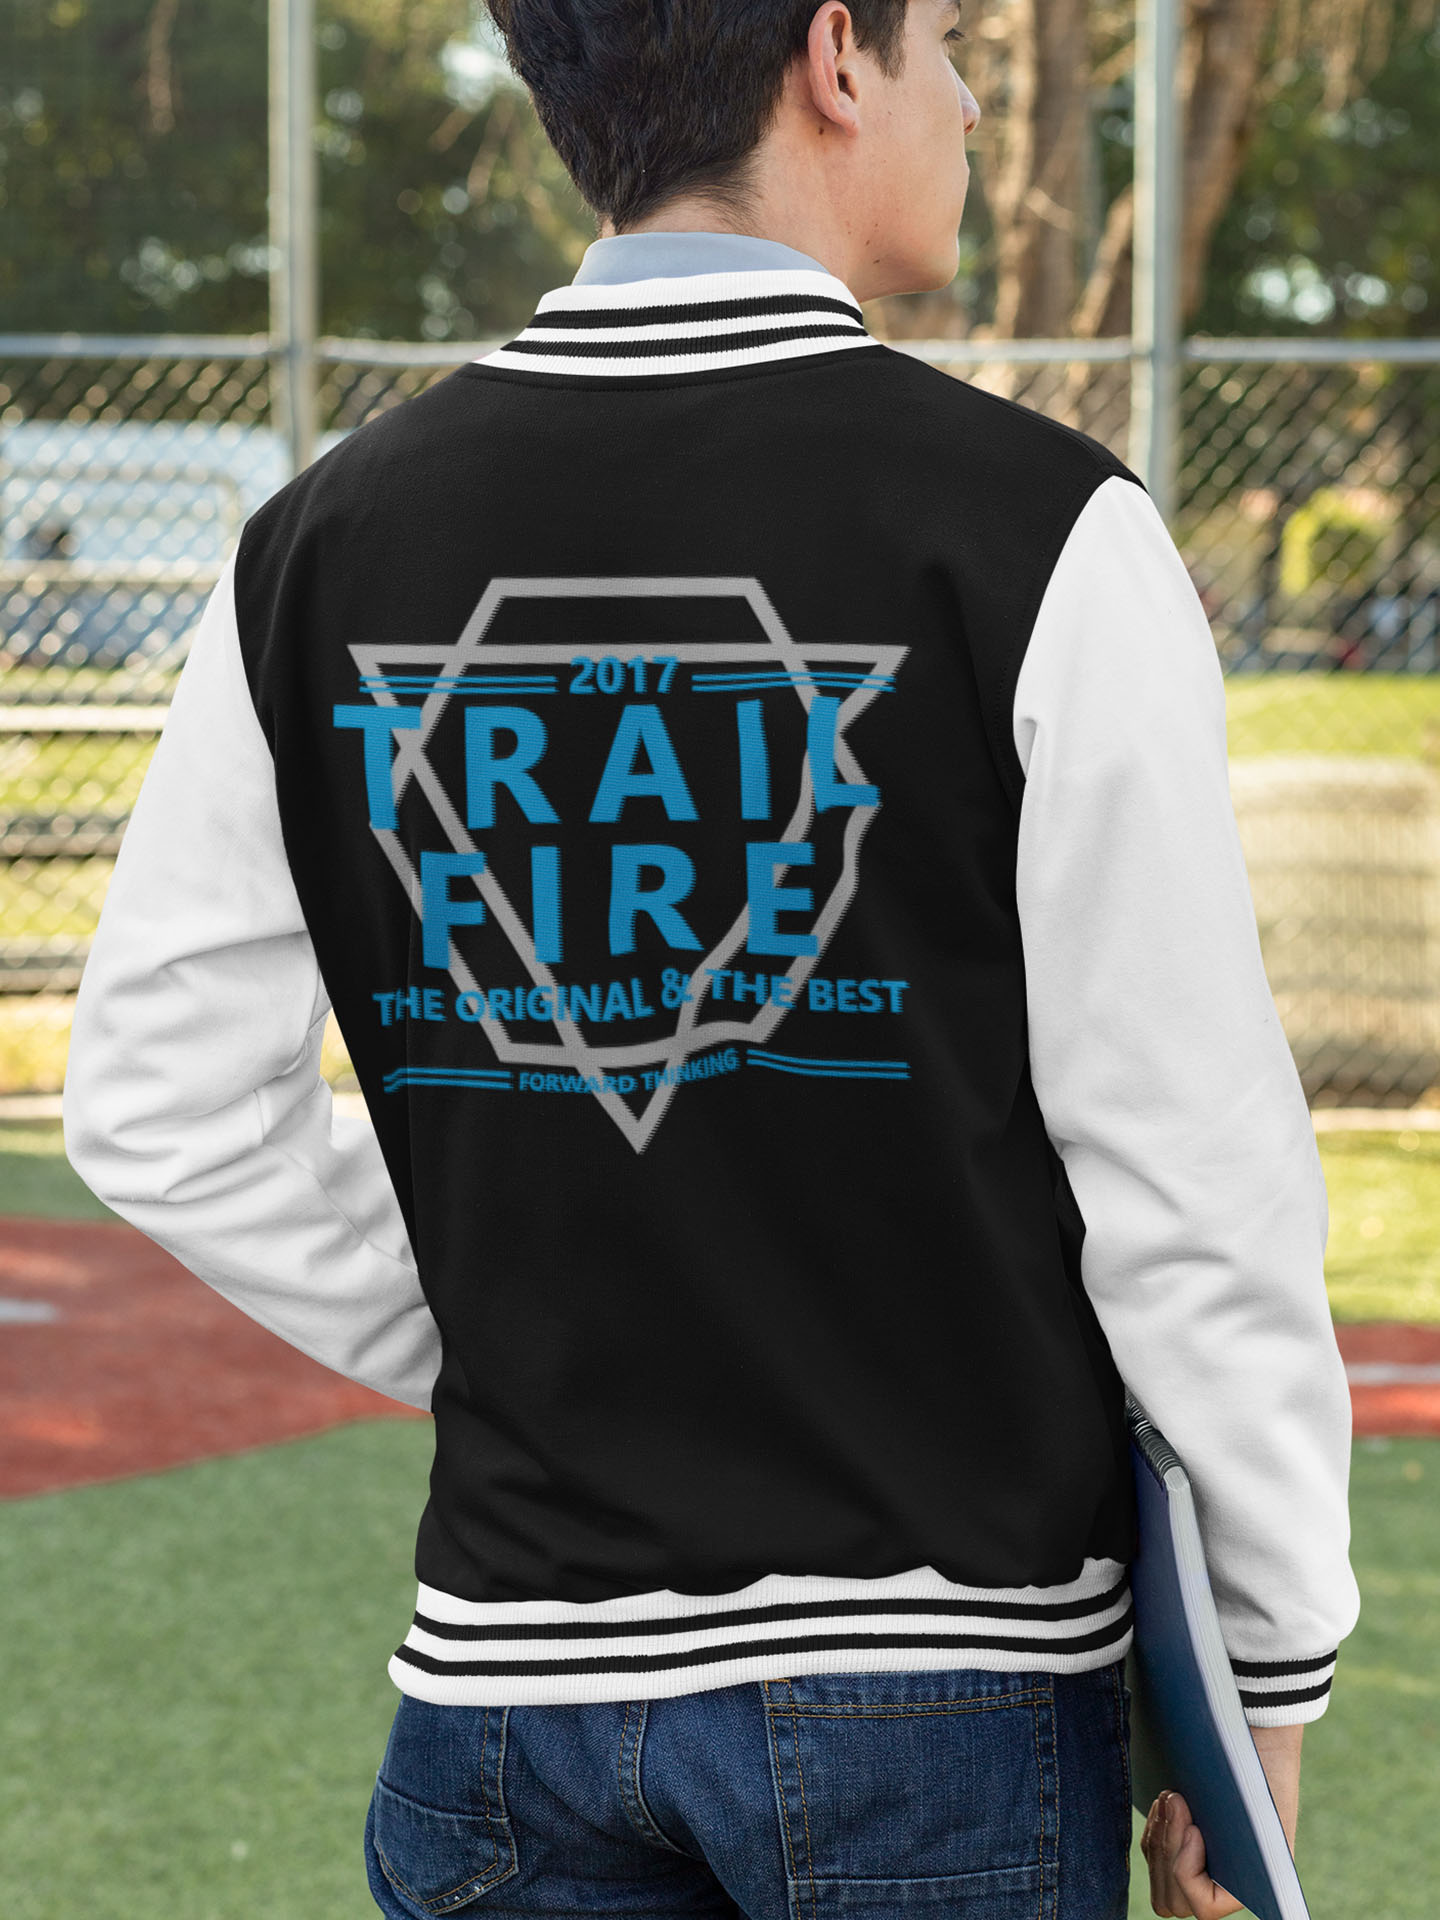 Spredshirt-Prints-Trailfire_0045_back-view-mockup-of-a-man-wearing-a-college-jacket-32203